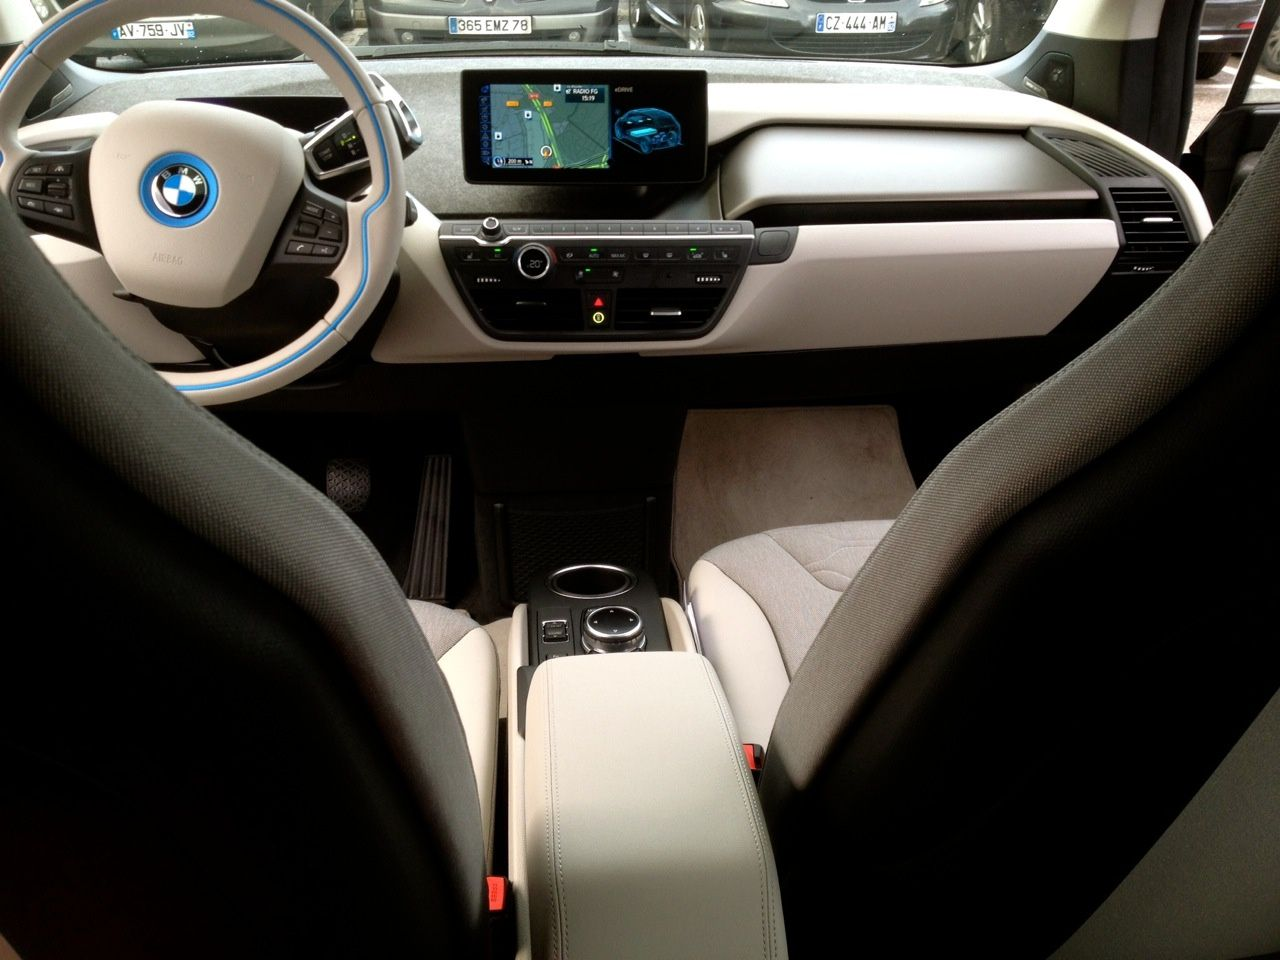 bmw i3 la citadine 100 electrique 130 160 km d 39 autonomie creer sa monnaie cela vous tente. Black Bedroom Furniture Sets. Home Design Ideas